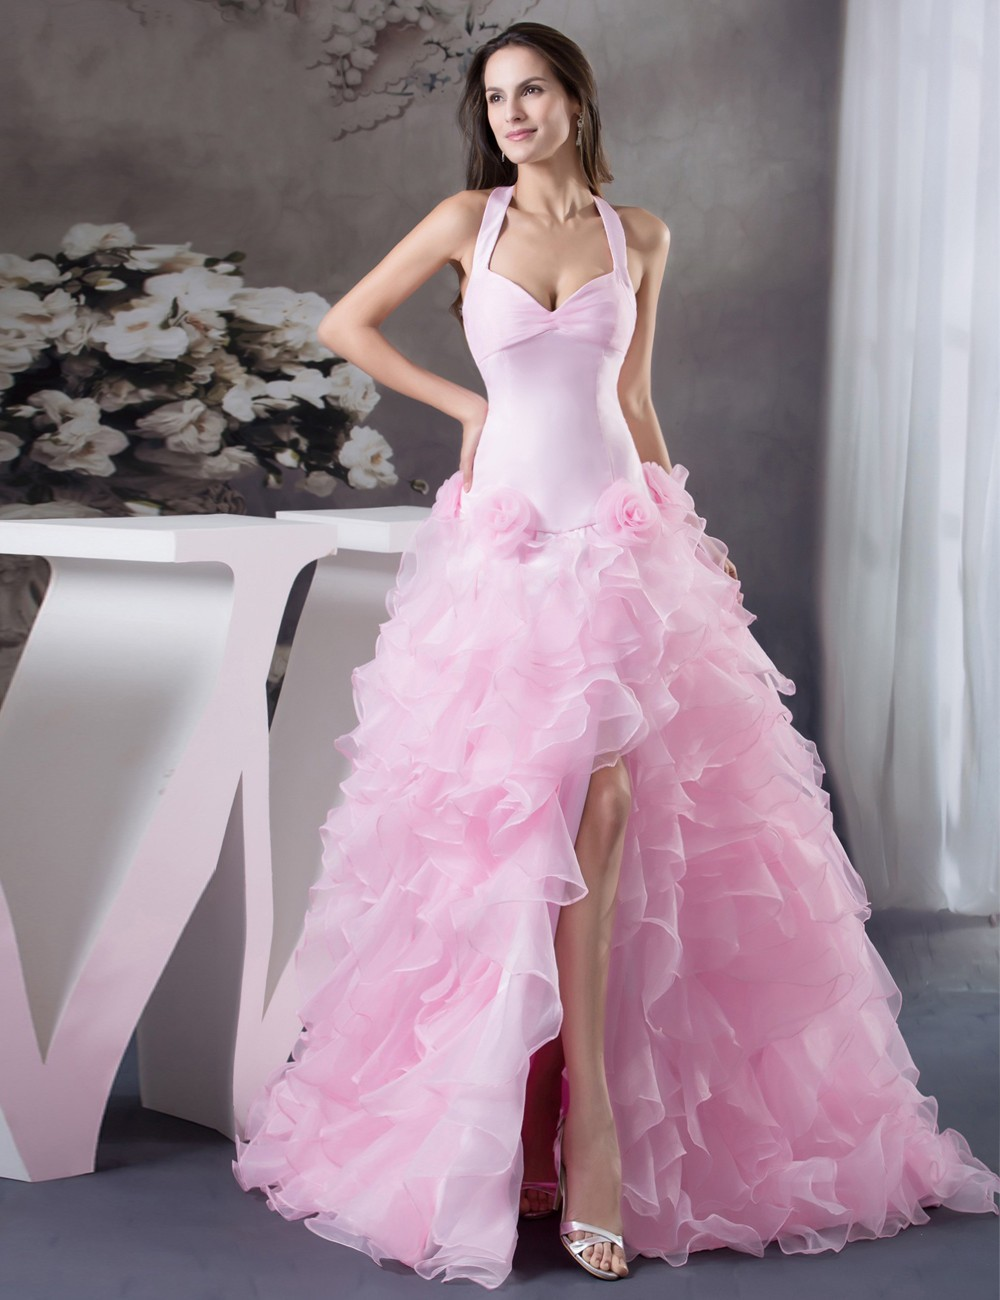 Halter And High Low Wedding Dresses